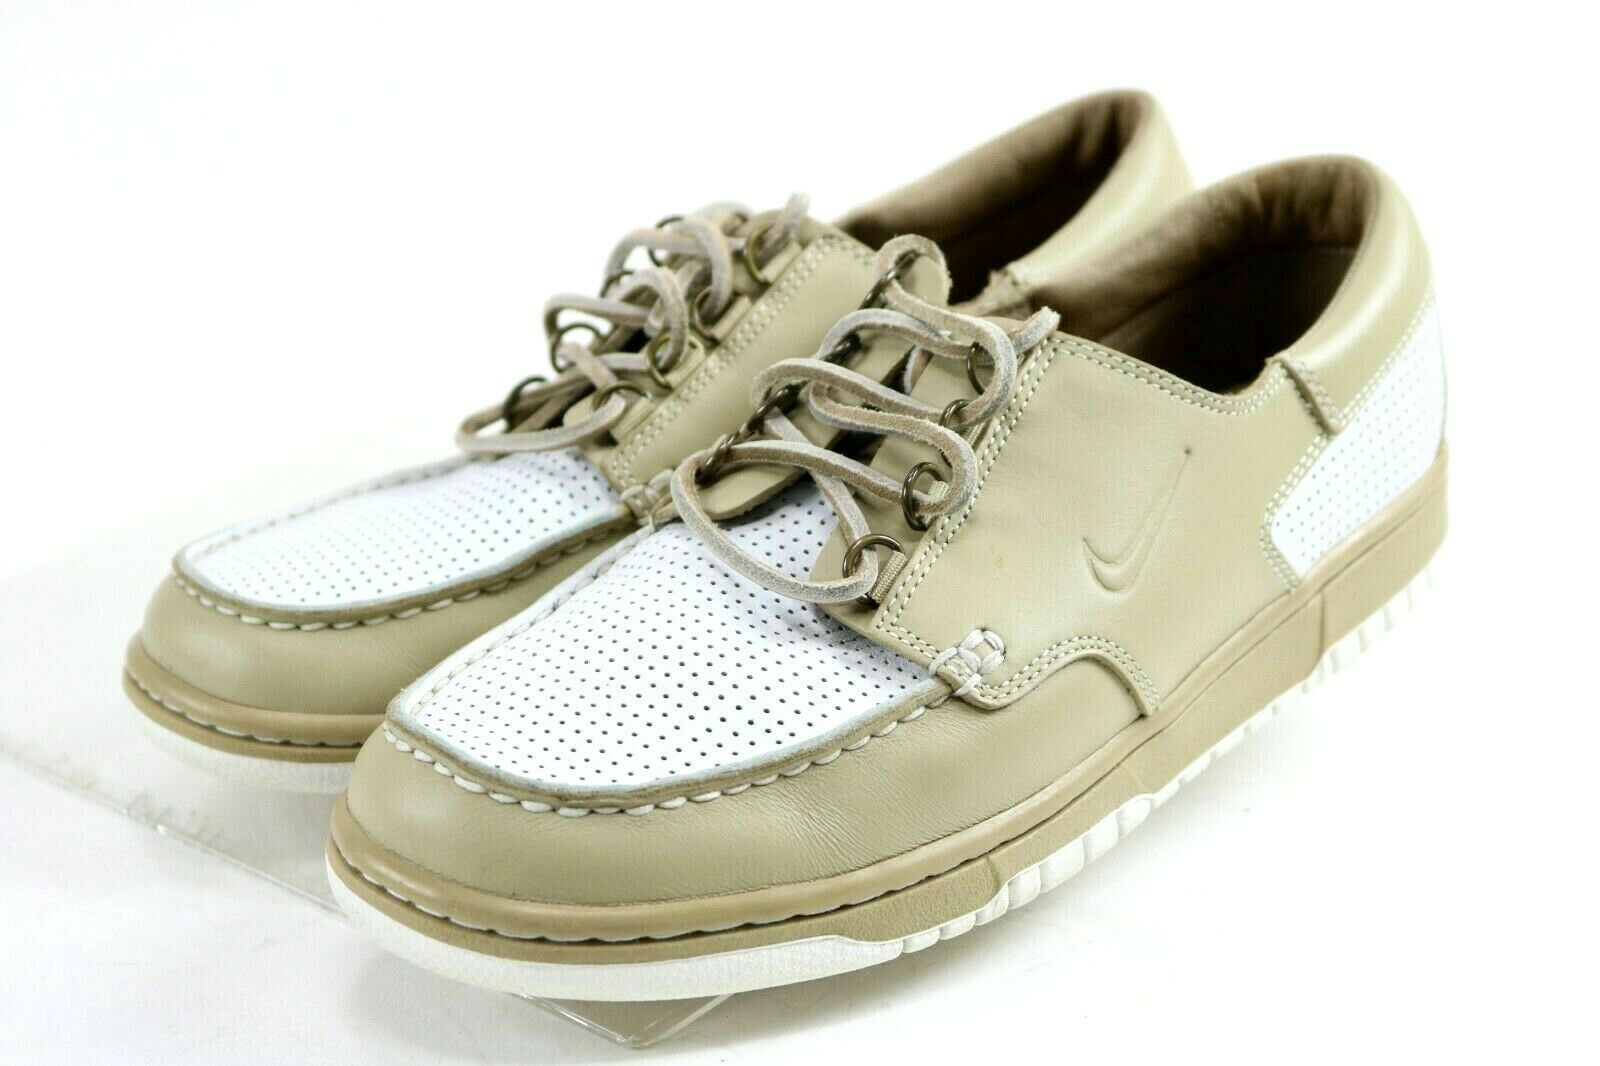 Nike Mad Jibe 2007  130 Men's Low Junk shoes Size 8.5 Beige White